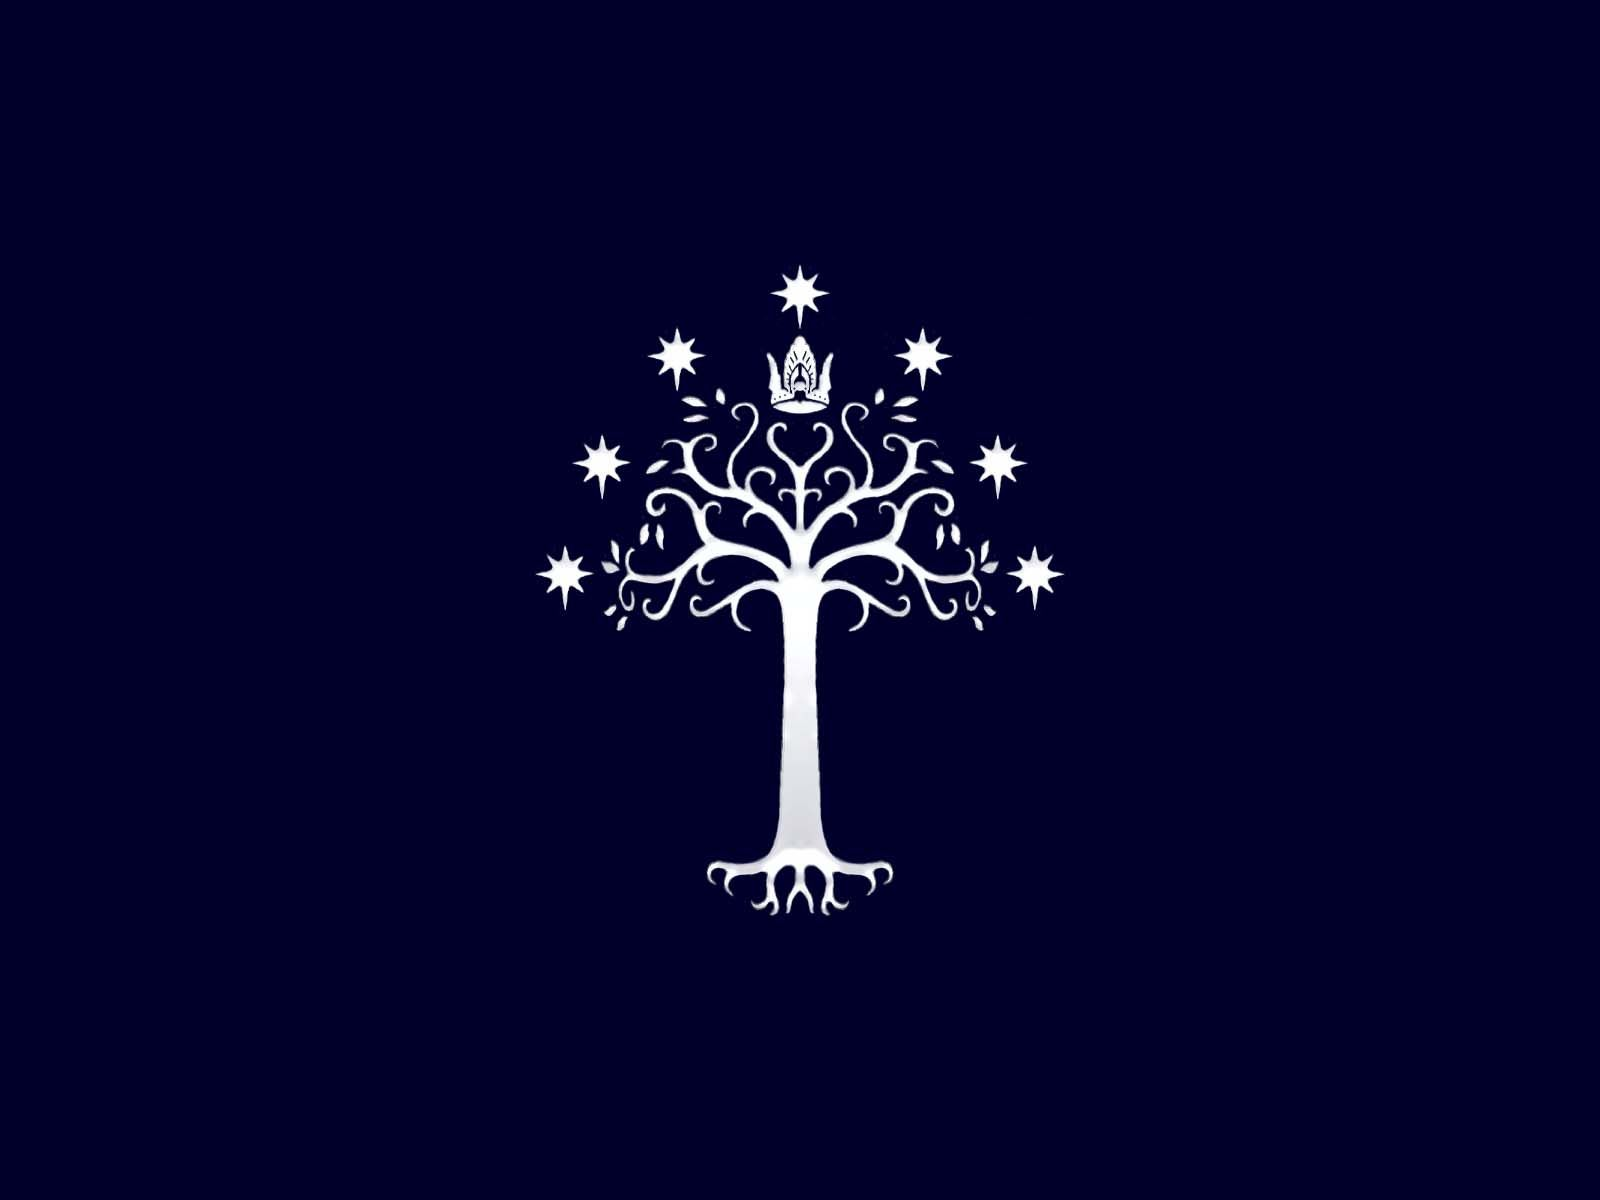 Gondor Pices The Lord of the Rings sigil white tree wallpaper 1600x1200